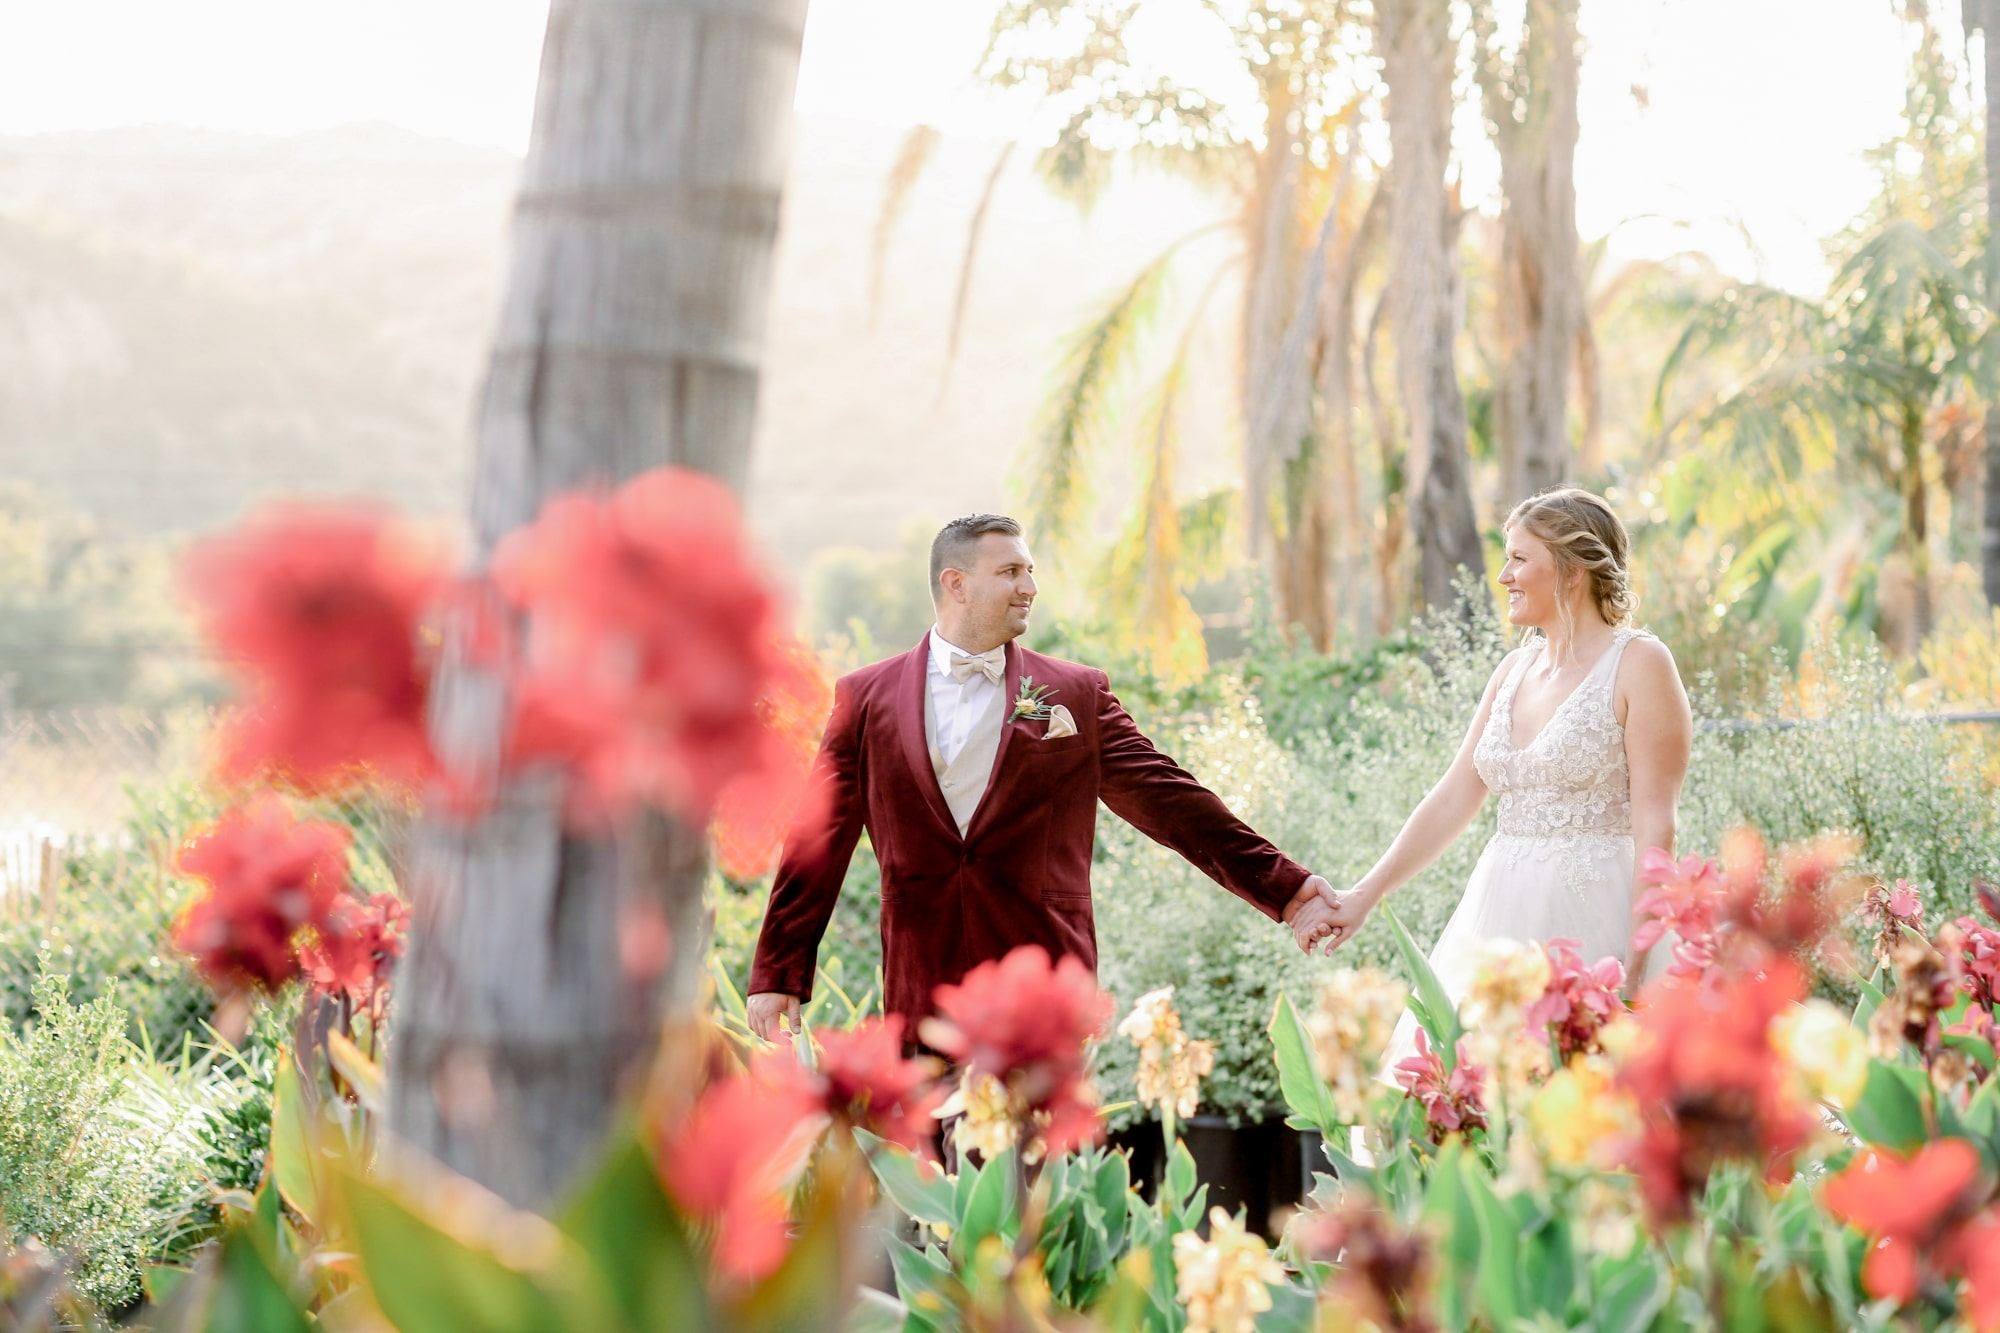 bride and groom in garden tucked behind some pink flowers holding hands